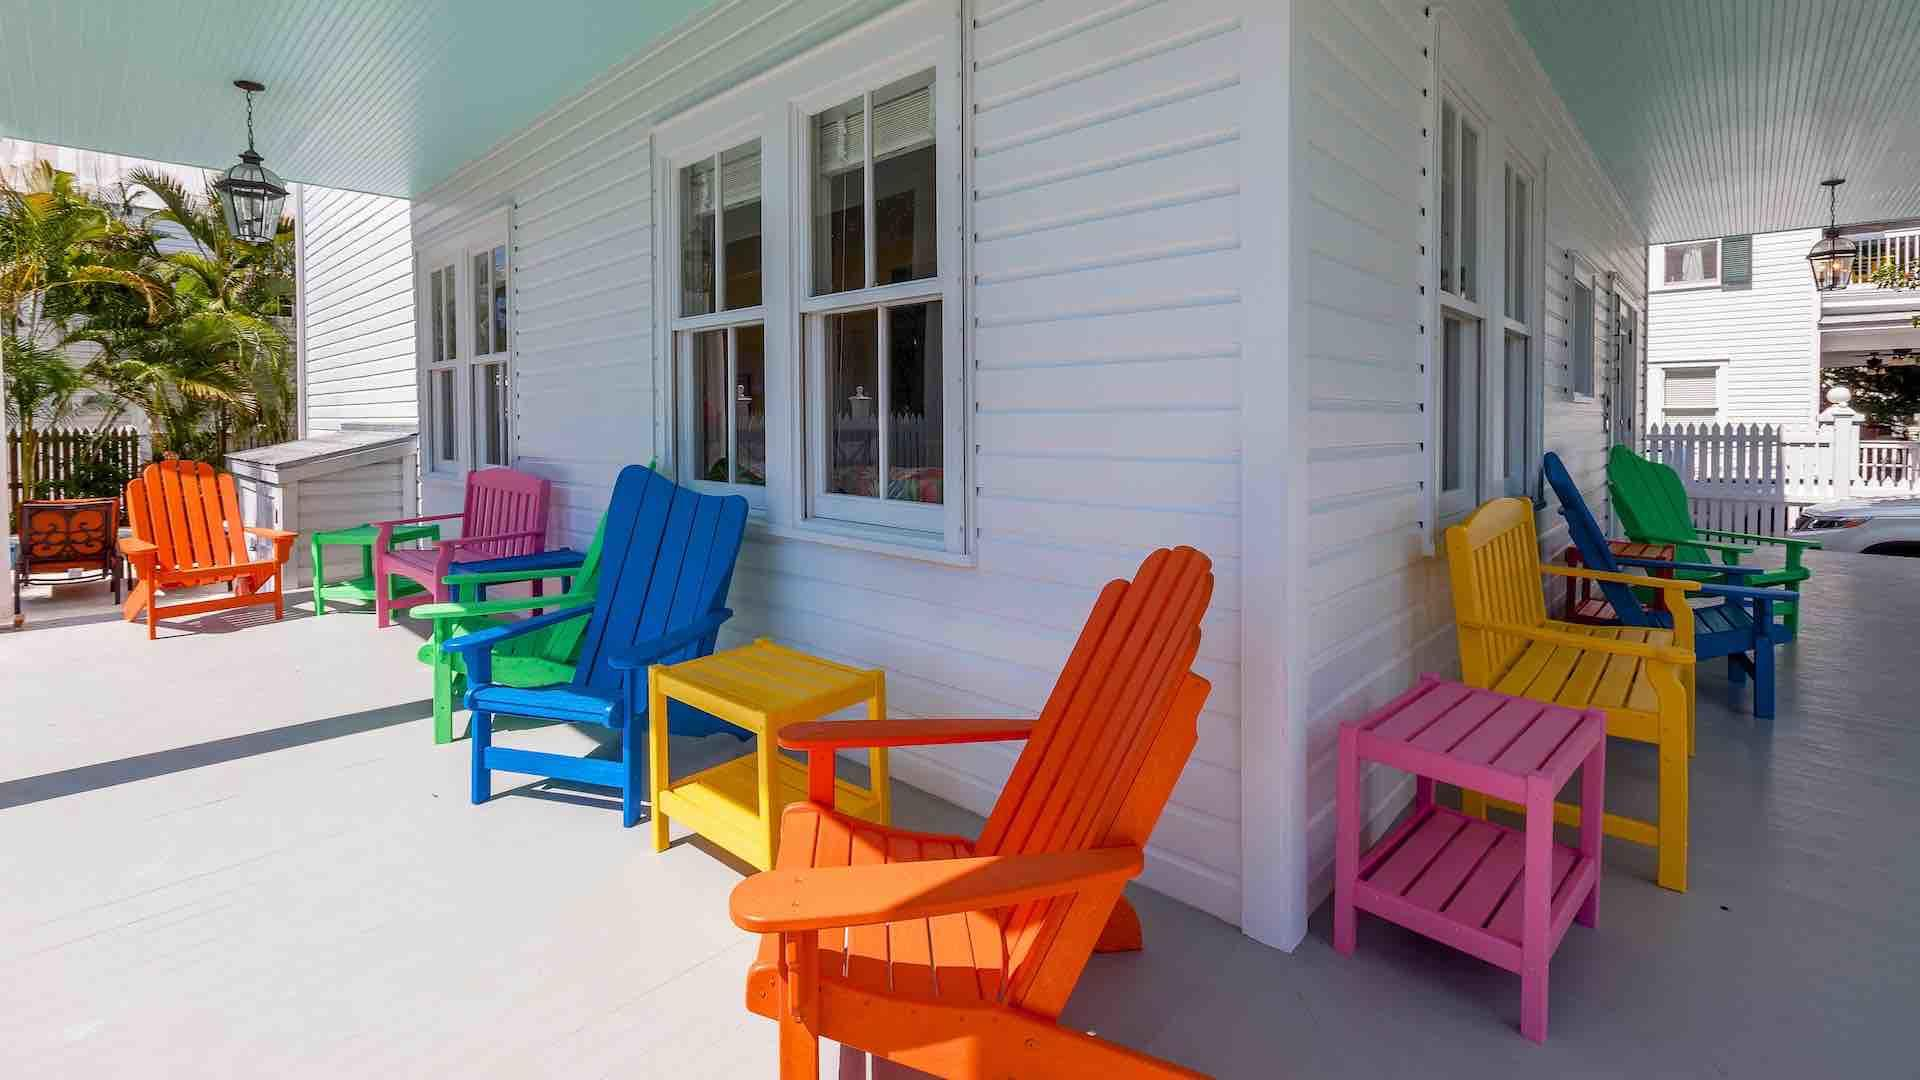 There is plenty of seating on the wrap-around porch...